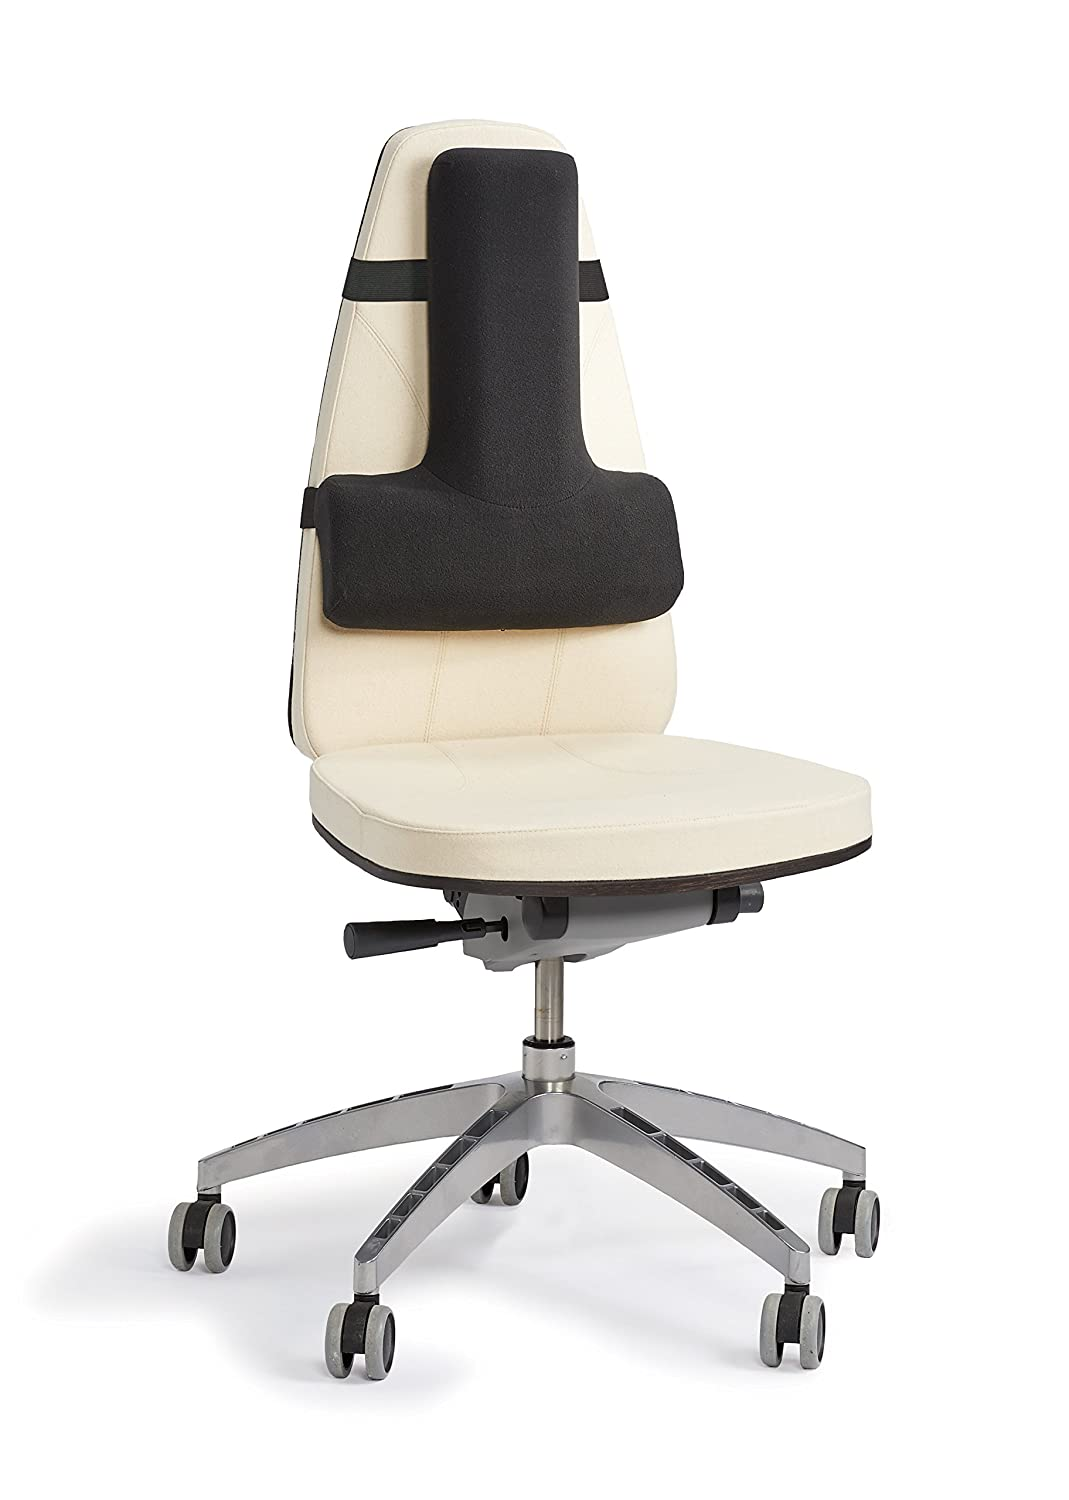 Best Office Chair For Kyphosis